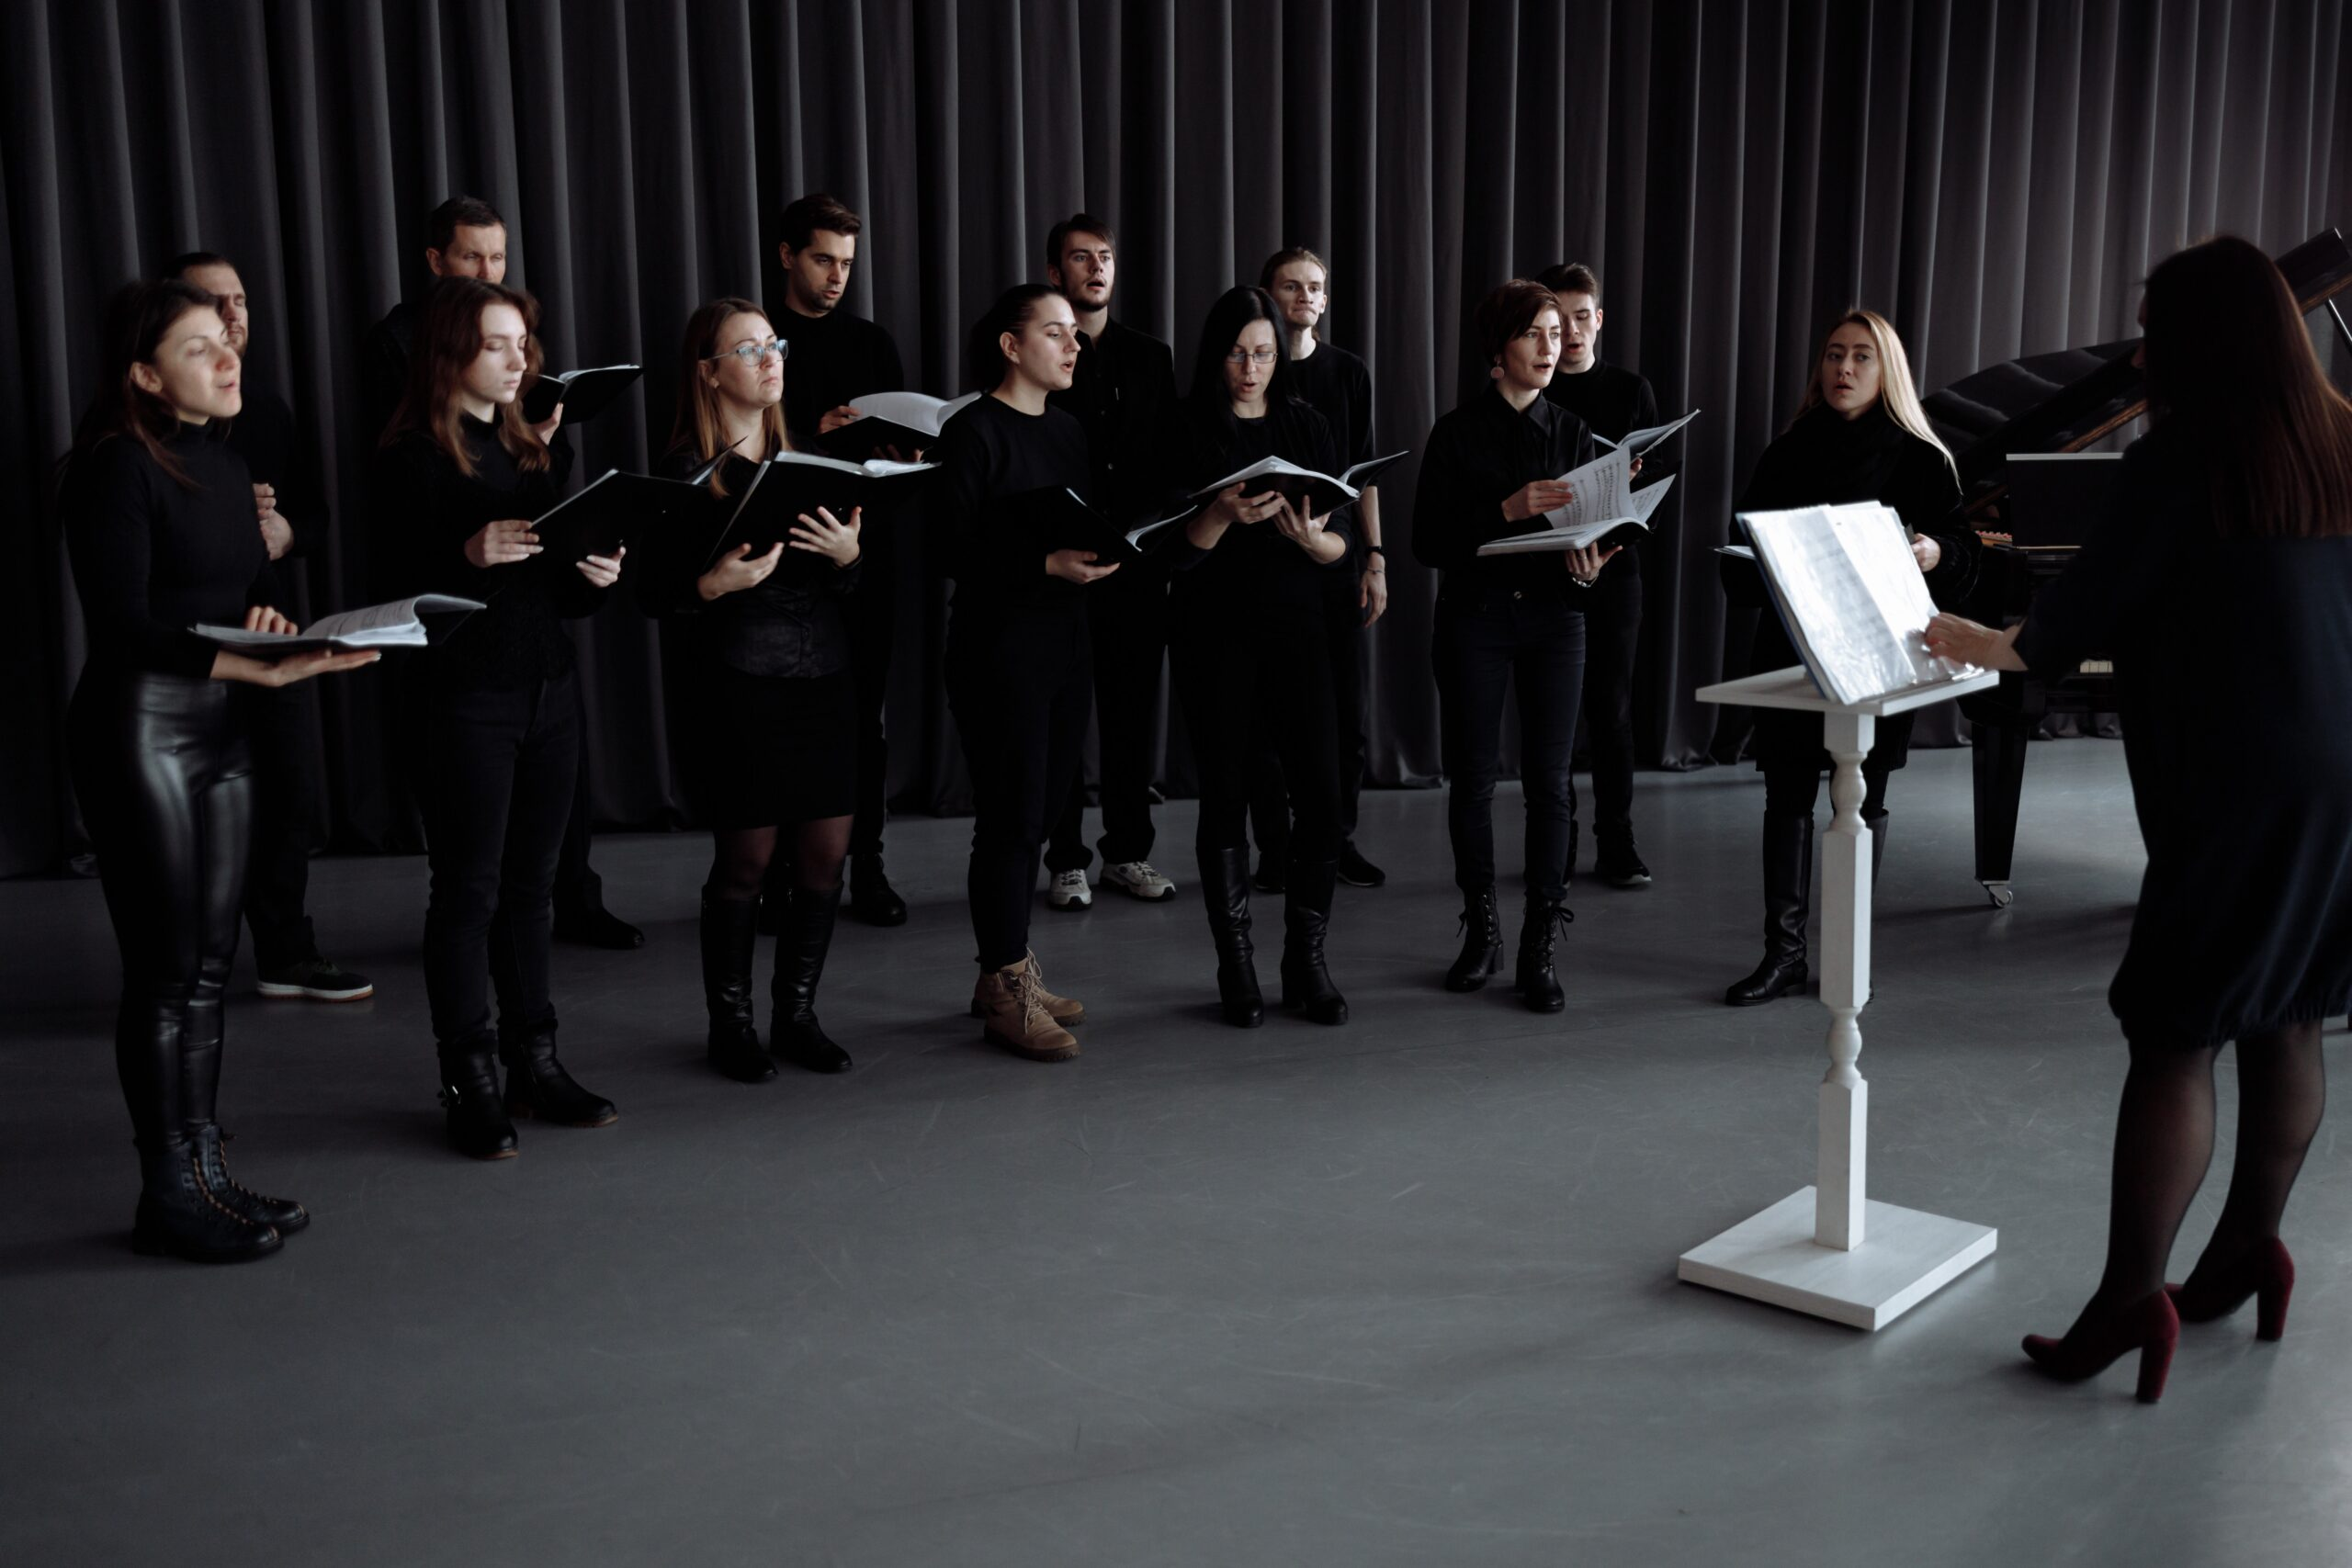 6 Realizations from this White Director about Inherent Racism within my Choir